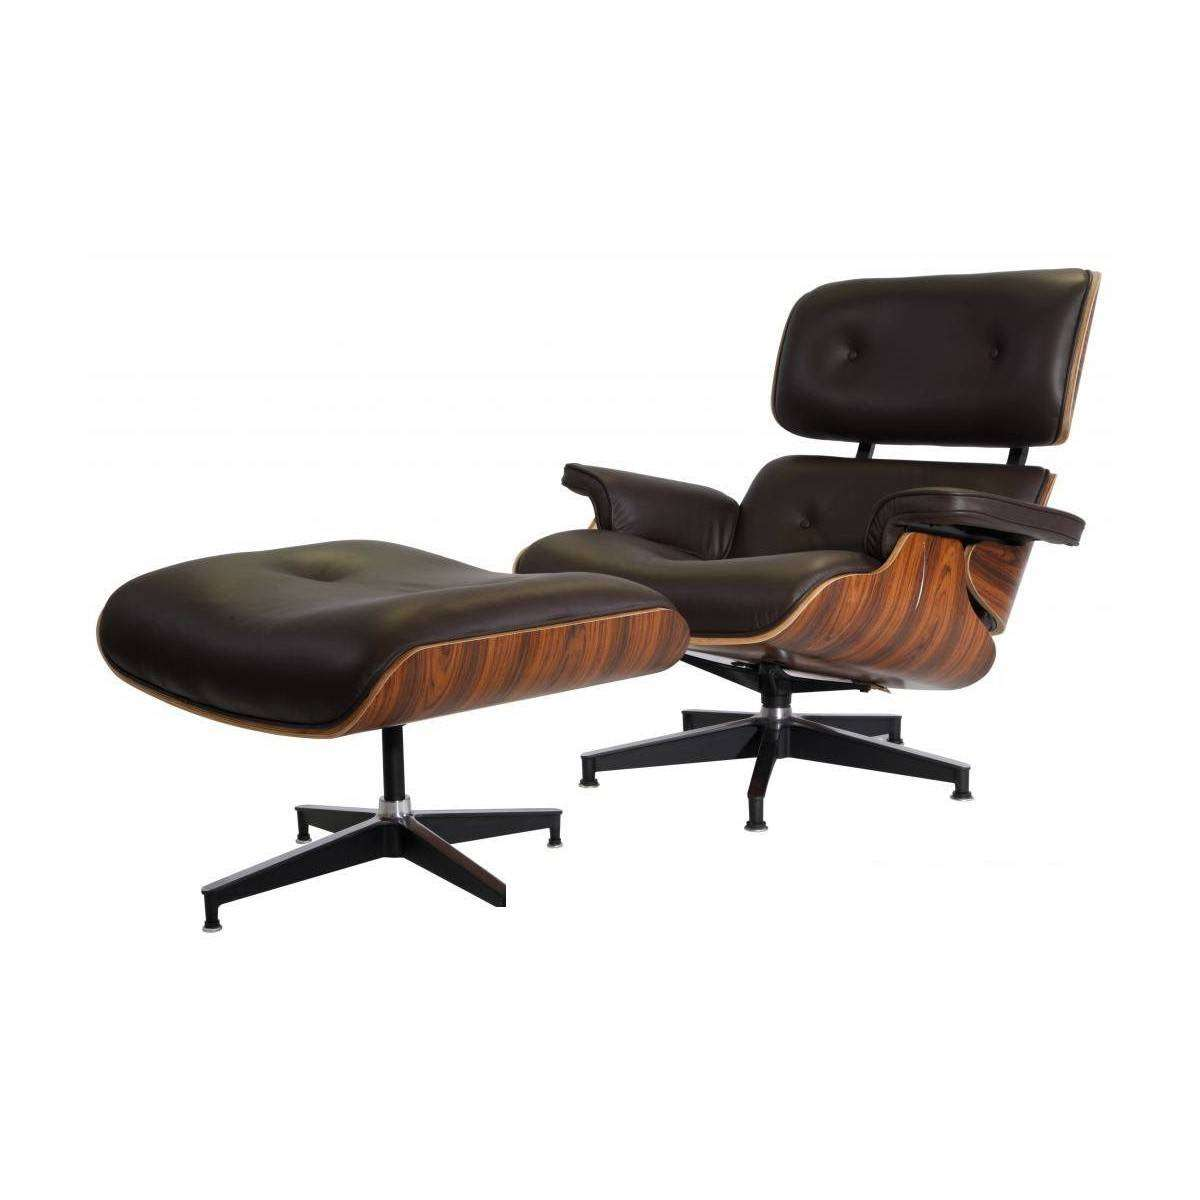 eames chair replica cover hire bury st edmunds lounge ottoman modterior usa